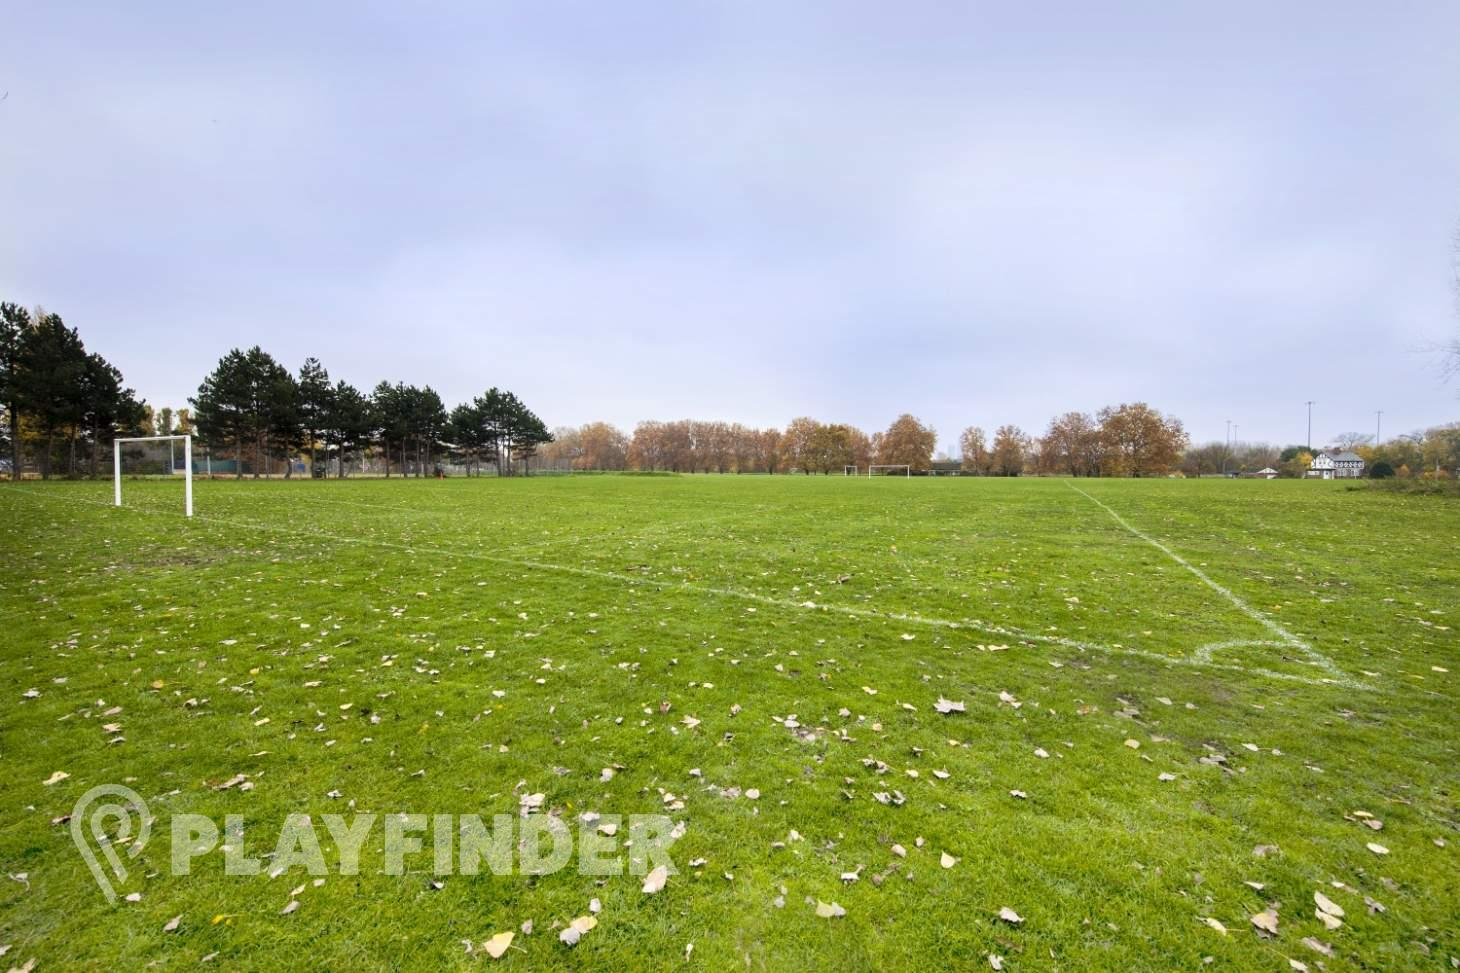 Leyton Jubilee Park 9 a side | Grass football pitch